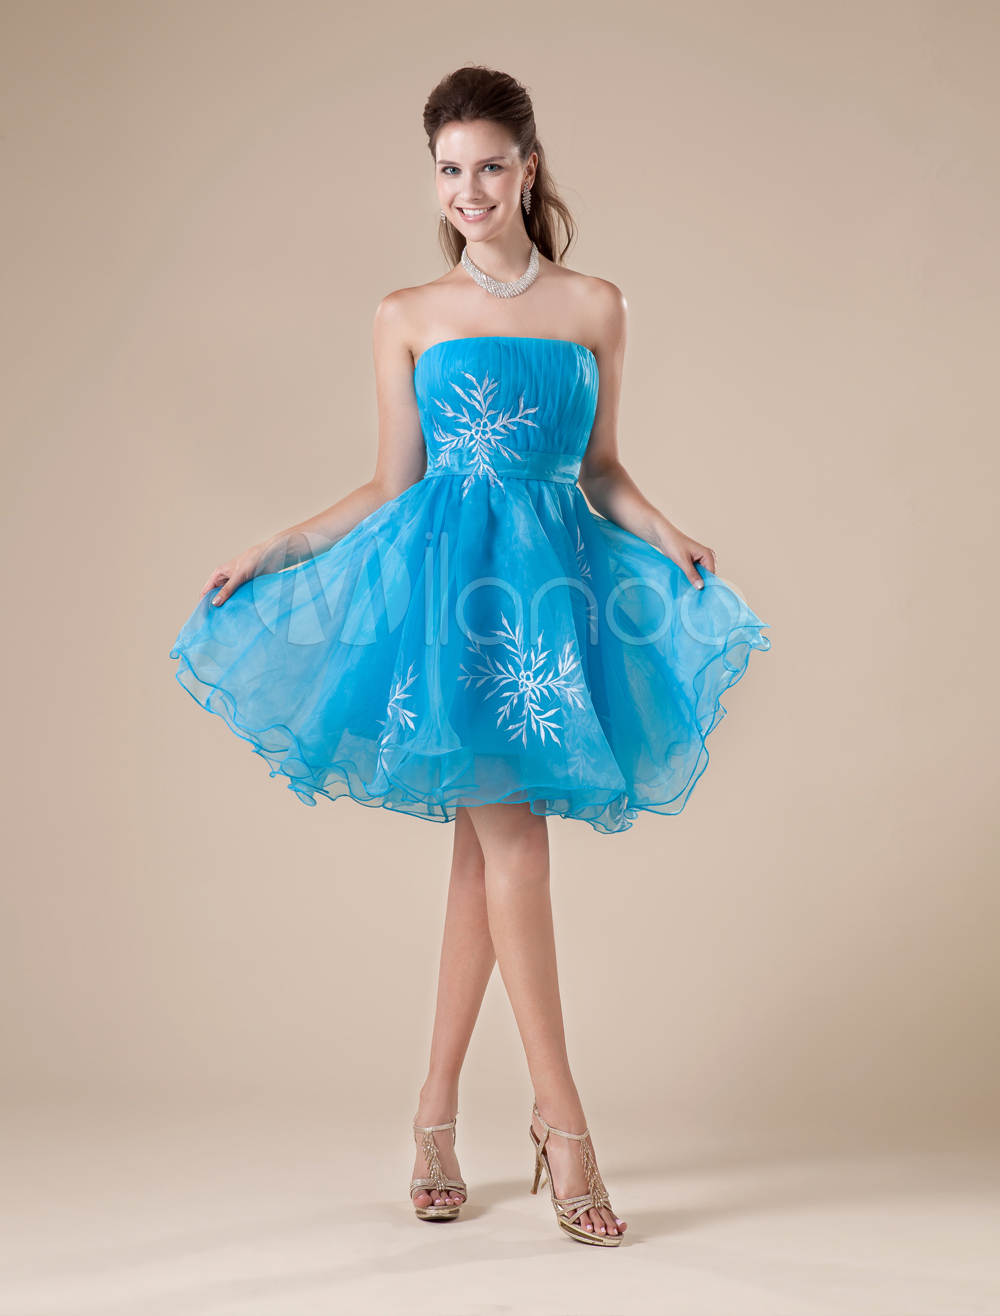 Short Blue Strapless Homecoming Dress with Tulle Skirt - Milanoo.com